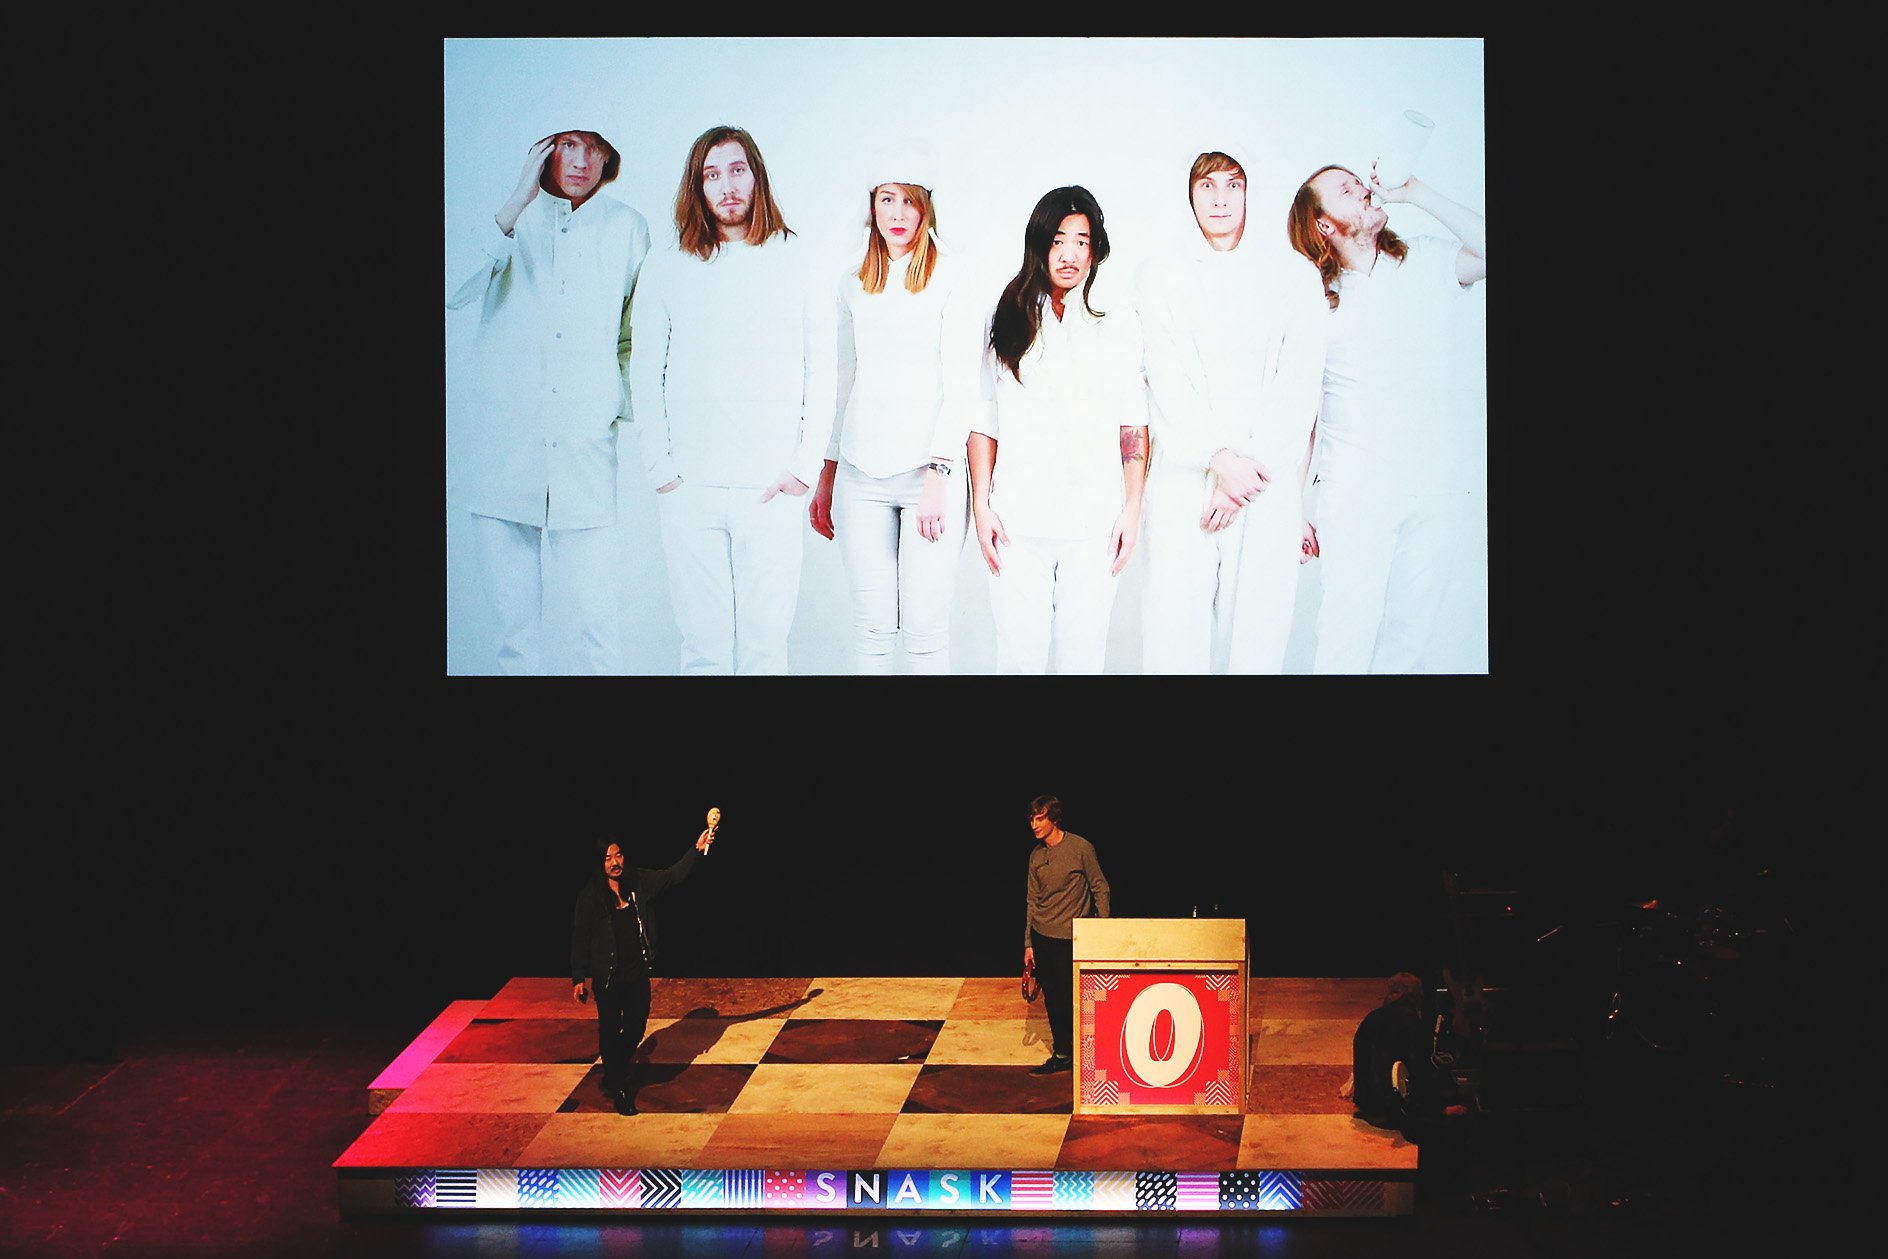 Snask at OFFSET 2015 – Awkward group photo